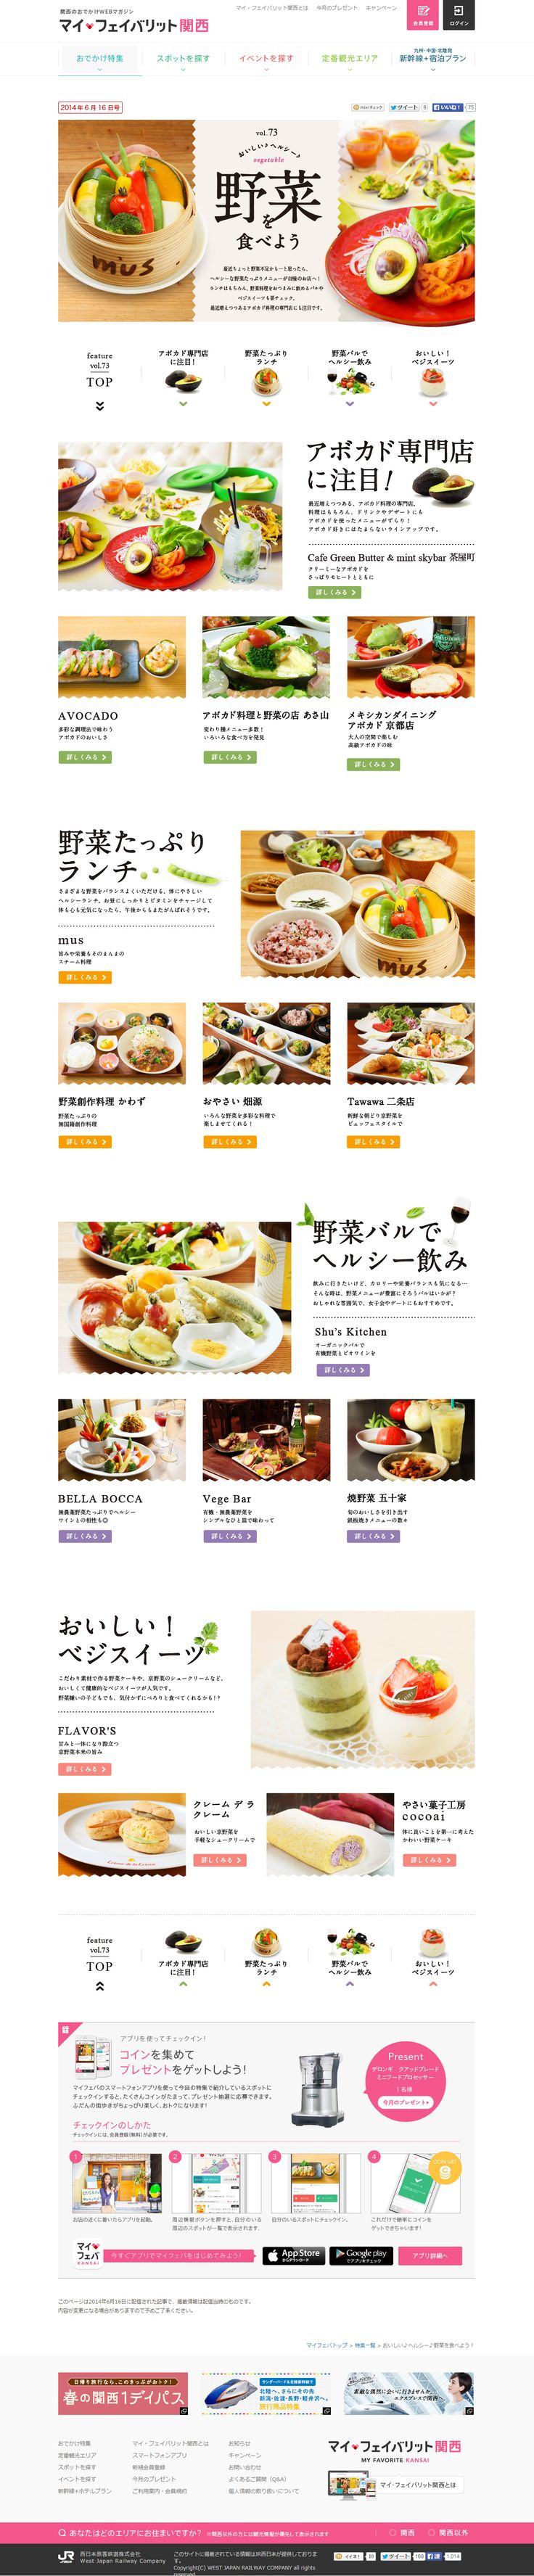 Nice food photography makes this design